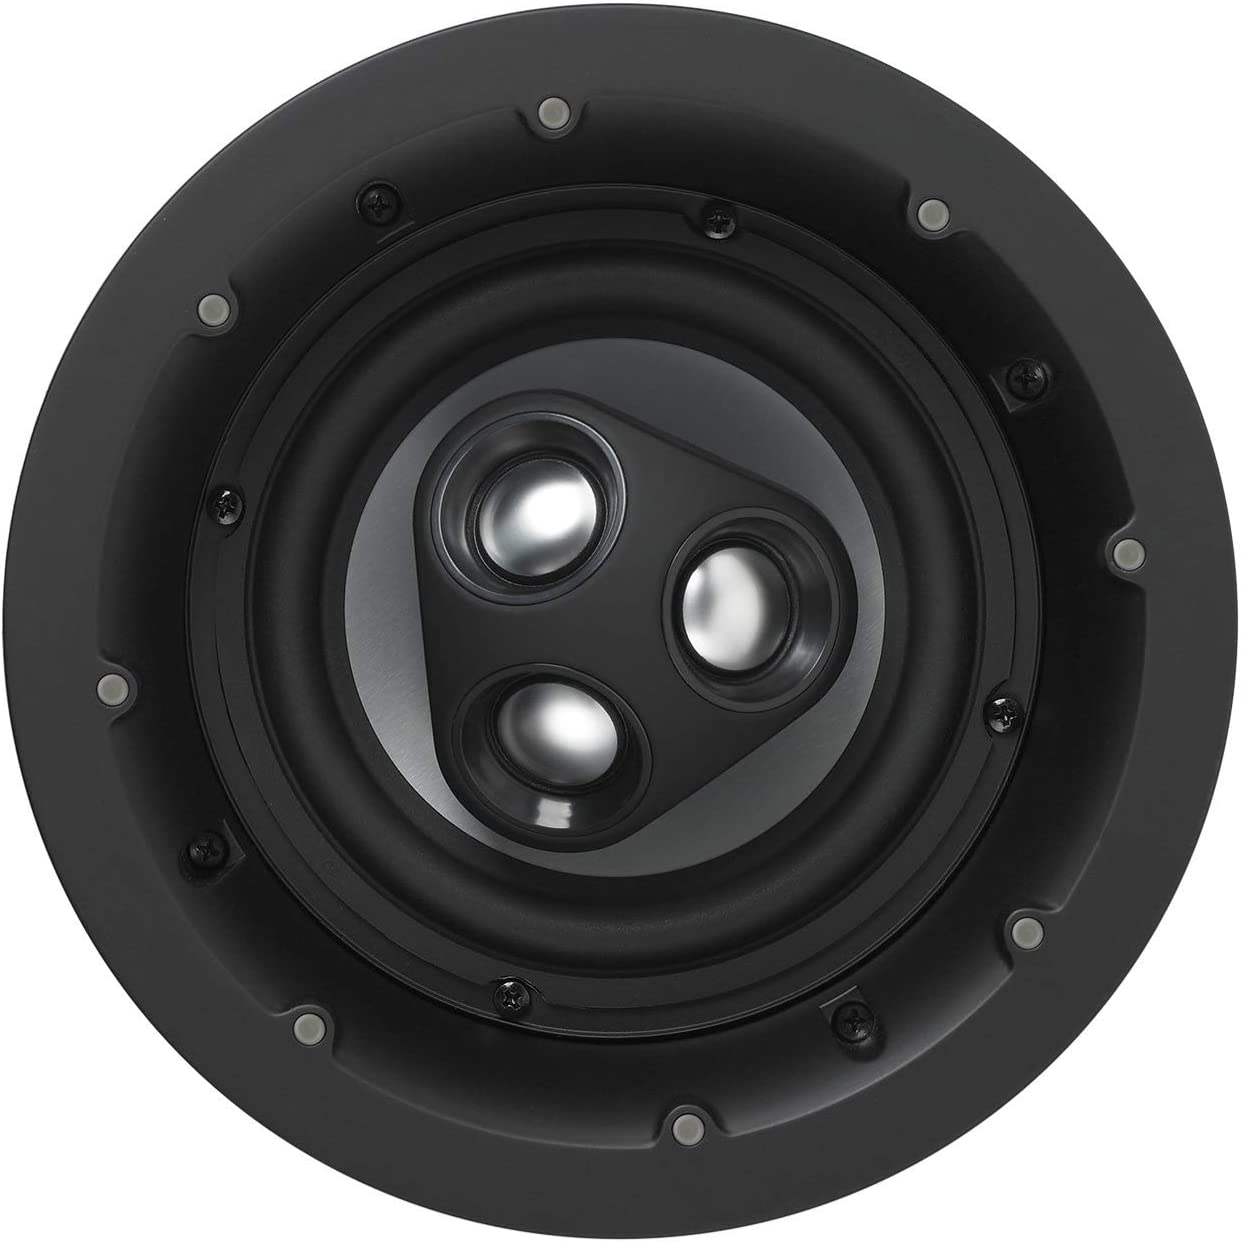 NHT iC3-ARC 2-Way 6.5-inch Premium In-Ceiling Speaker | Aluminum Drivers, 125 Watts | Patented Three-tweeter Array | Hi-res Height Channel | Single, Matte White